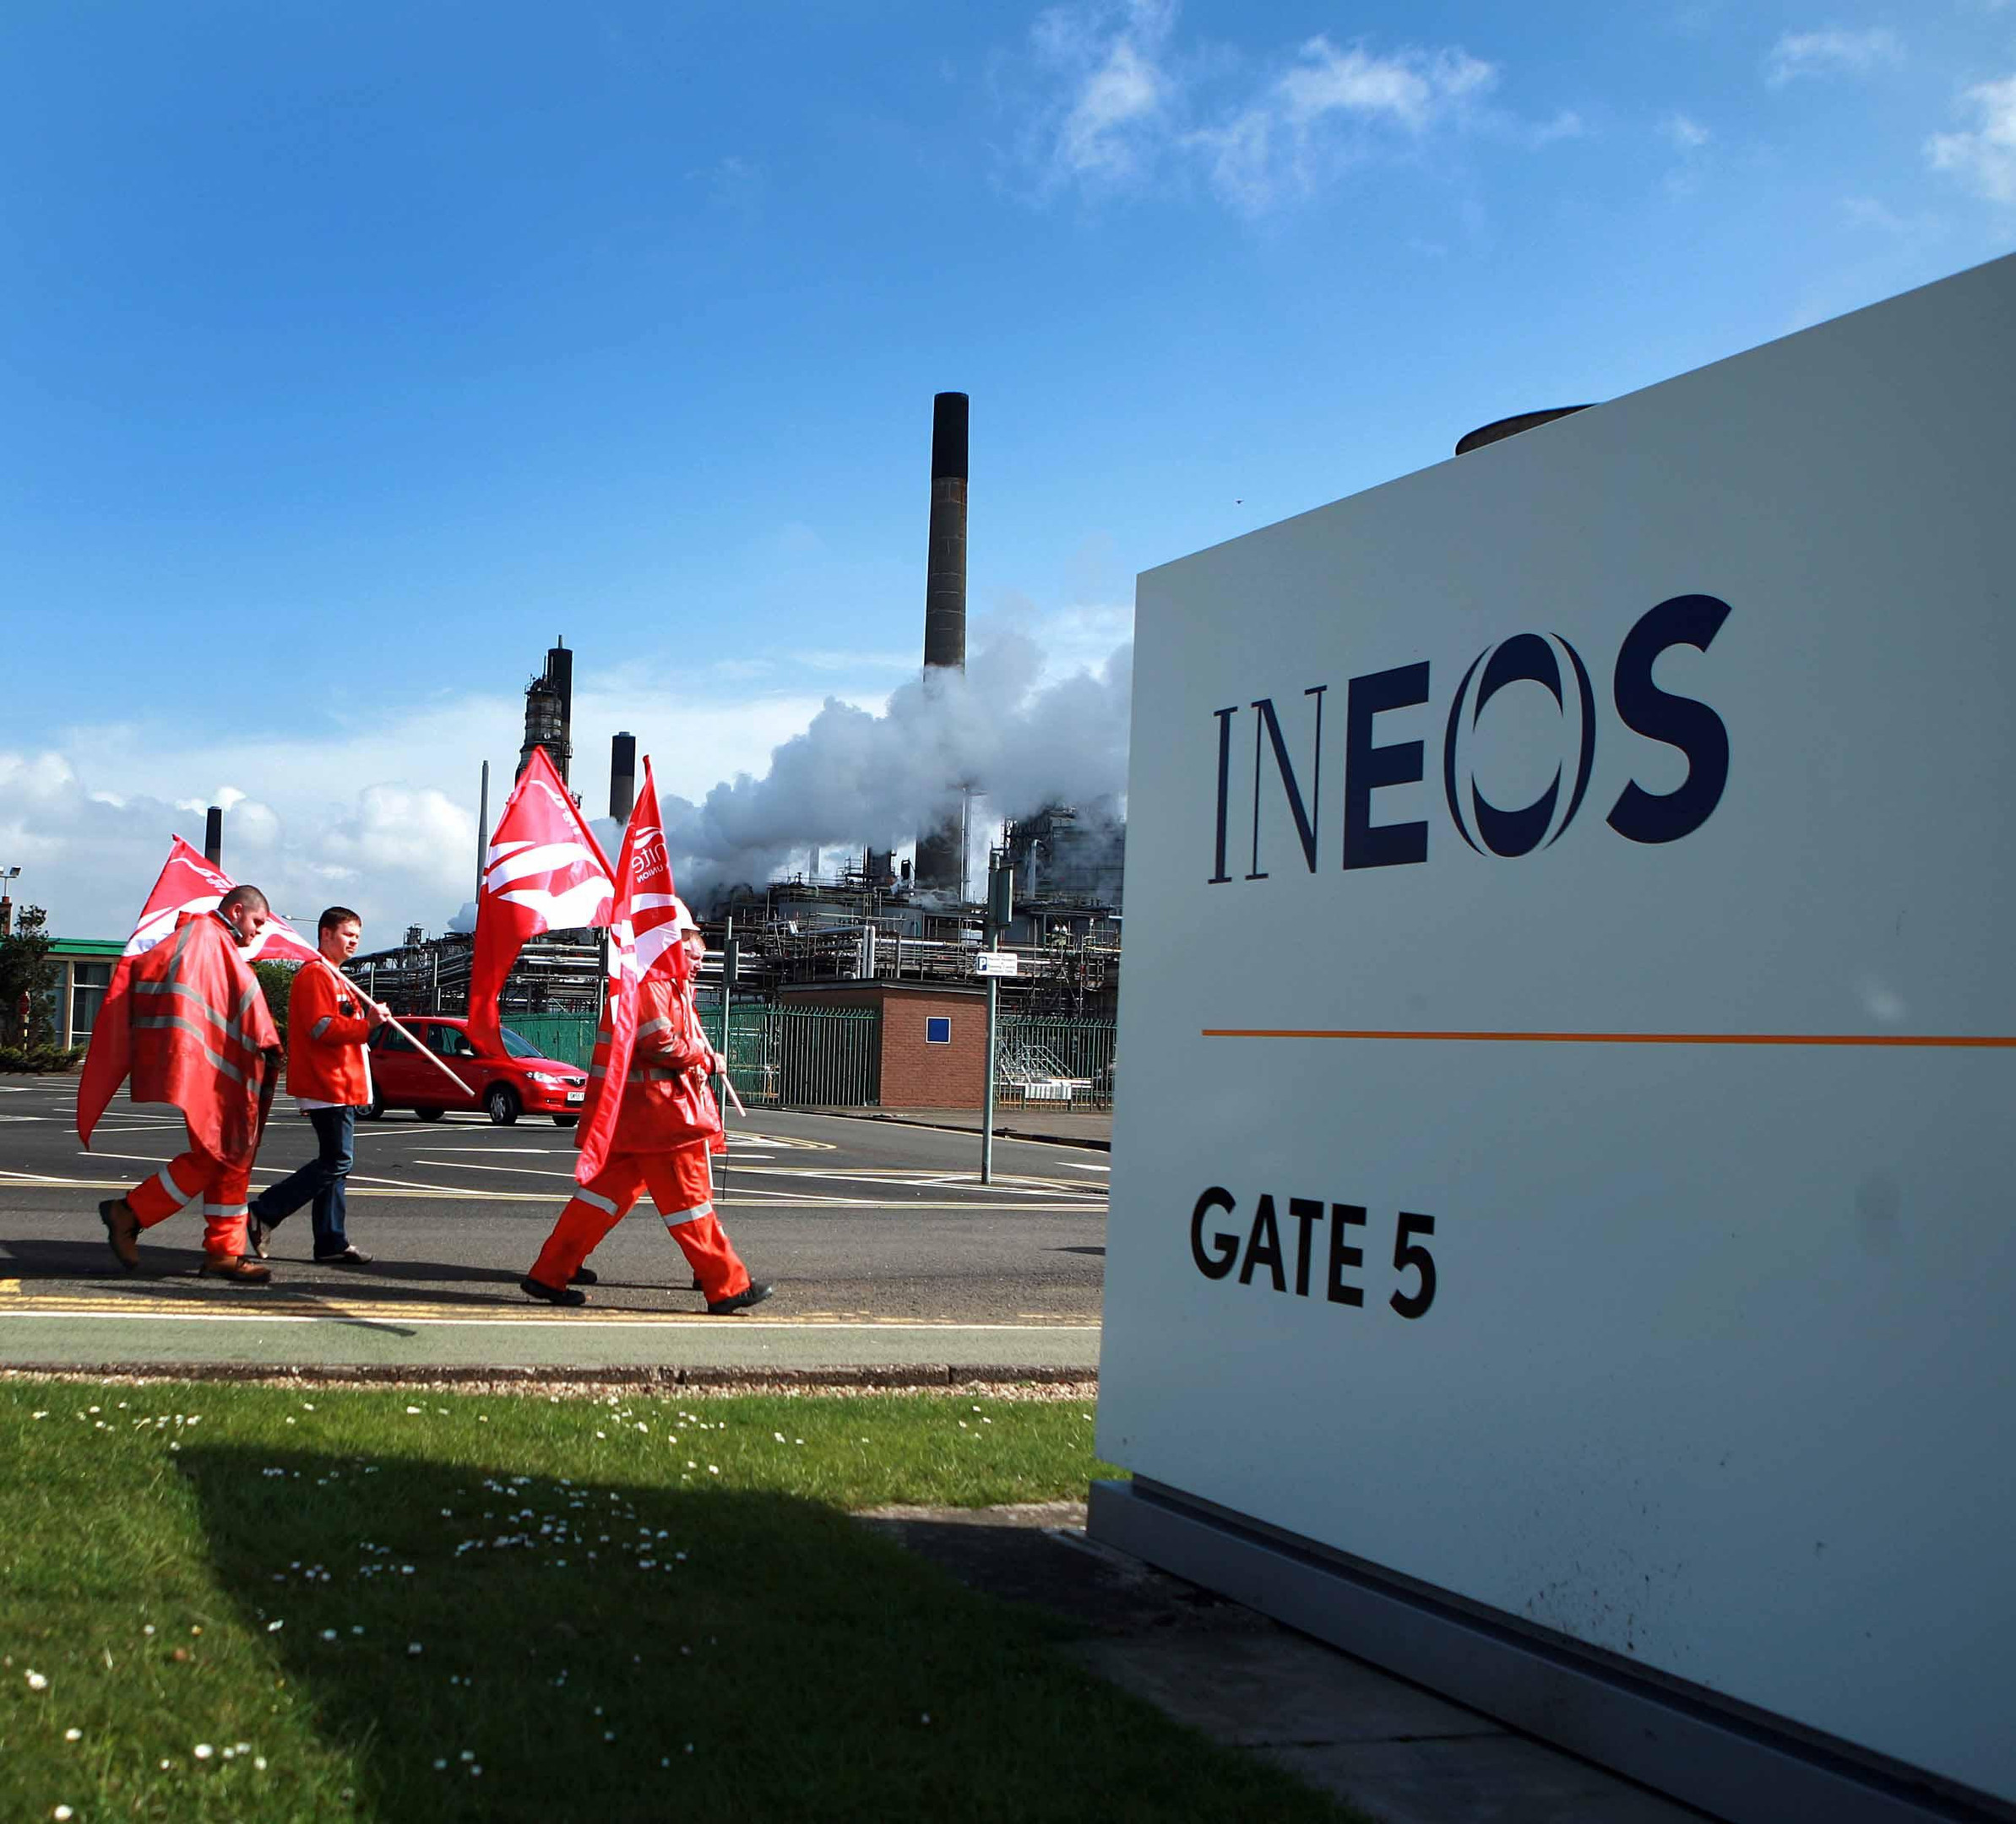 UNite workers outside Ineos Grangemouth during a previous period of industrial action.